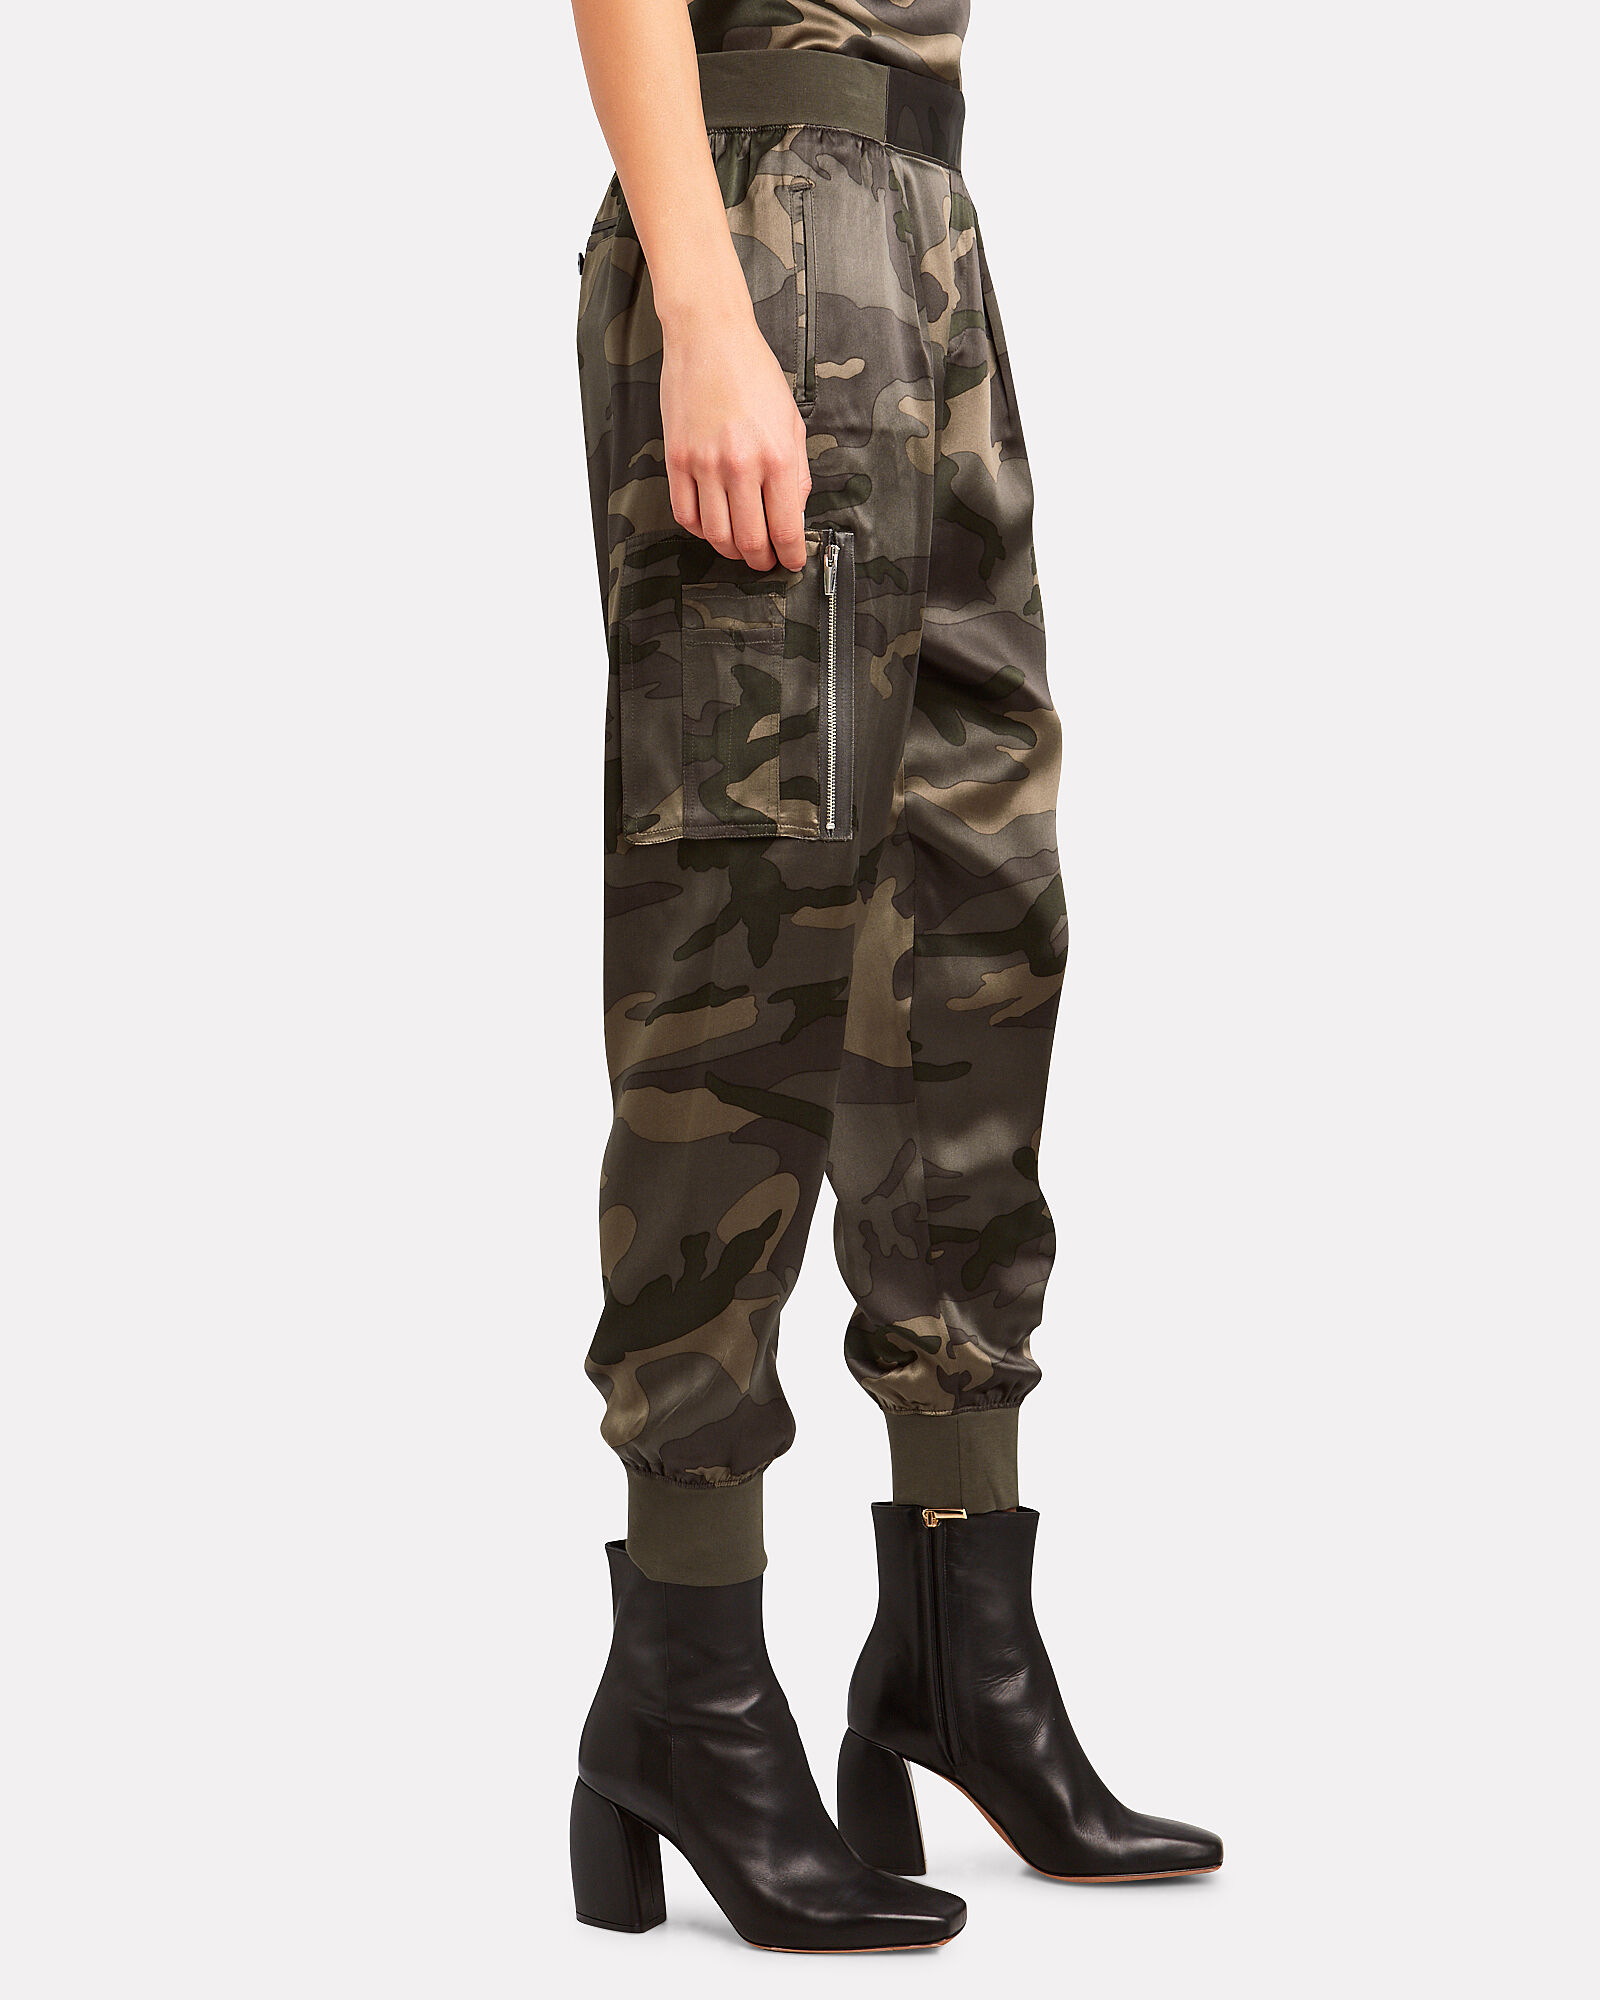 Camouflage Silk Cargo Pants, OLIVE/CAMO, hi-res